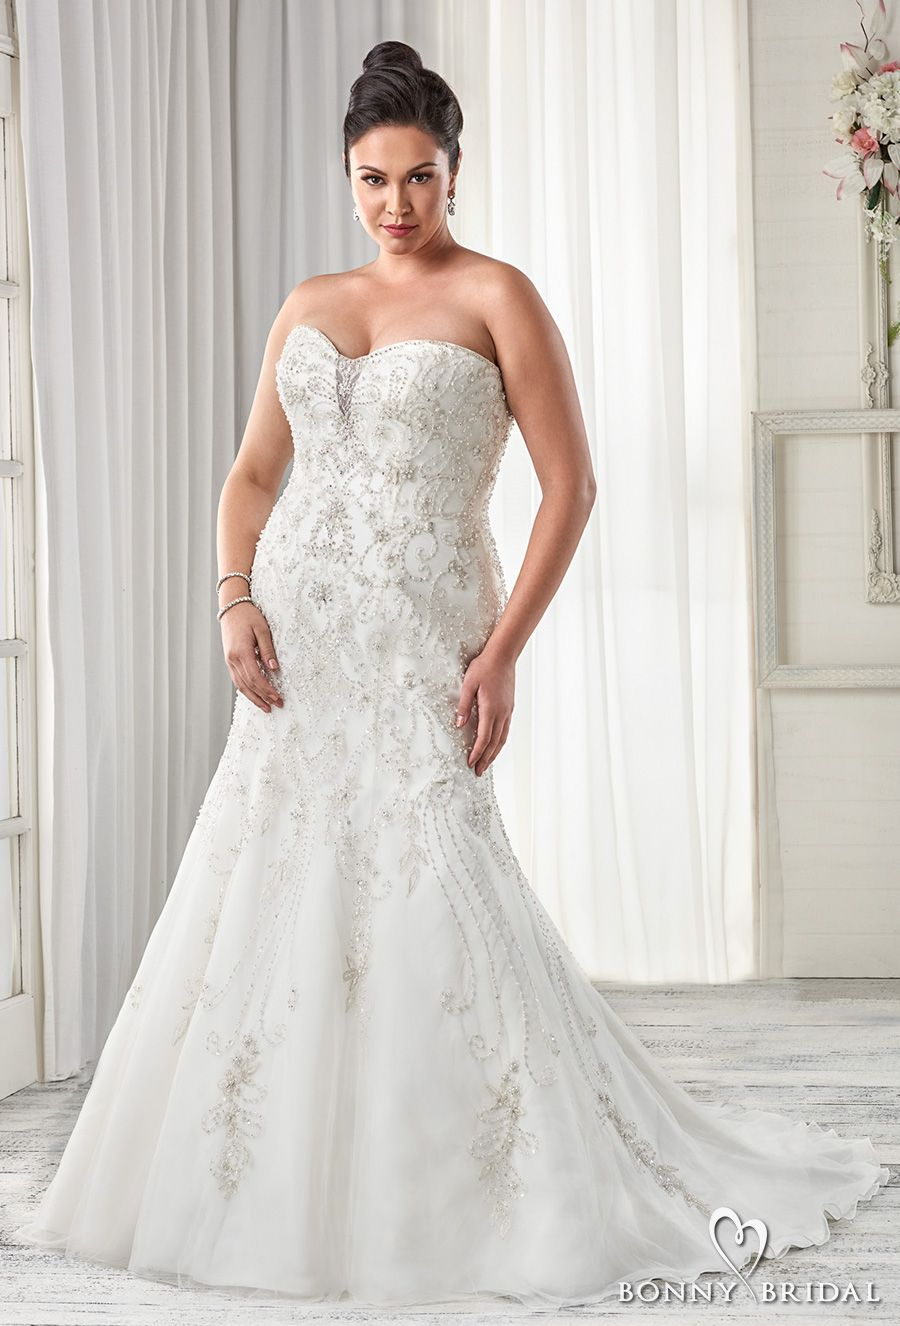 d746ab4b598 bonny bridal 2017 strapless sweetheart neckline heavily embellished bodice  drop waist plus size fit and flare a line wedding dress sweep train (1600)  mv ...